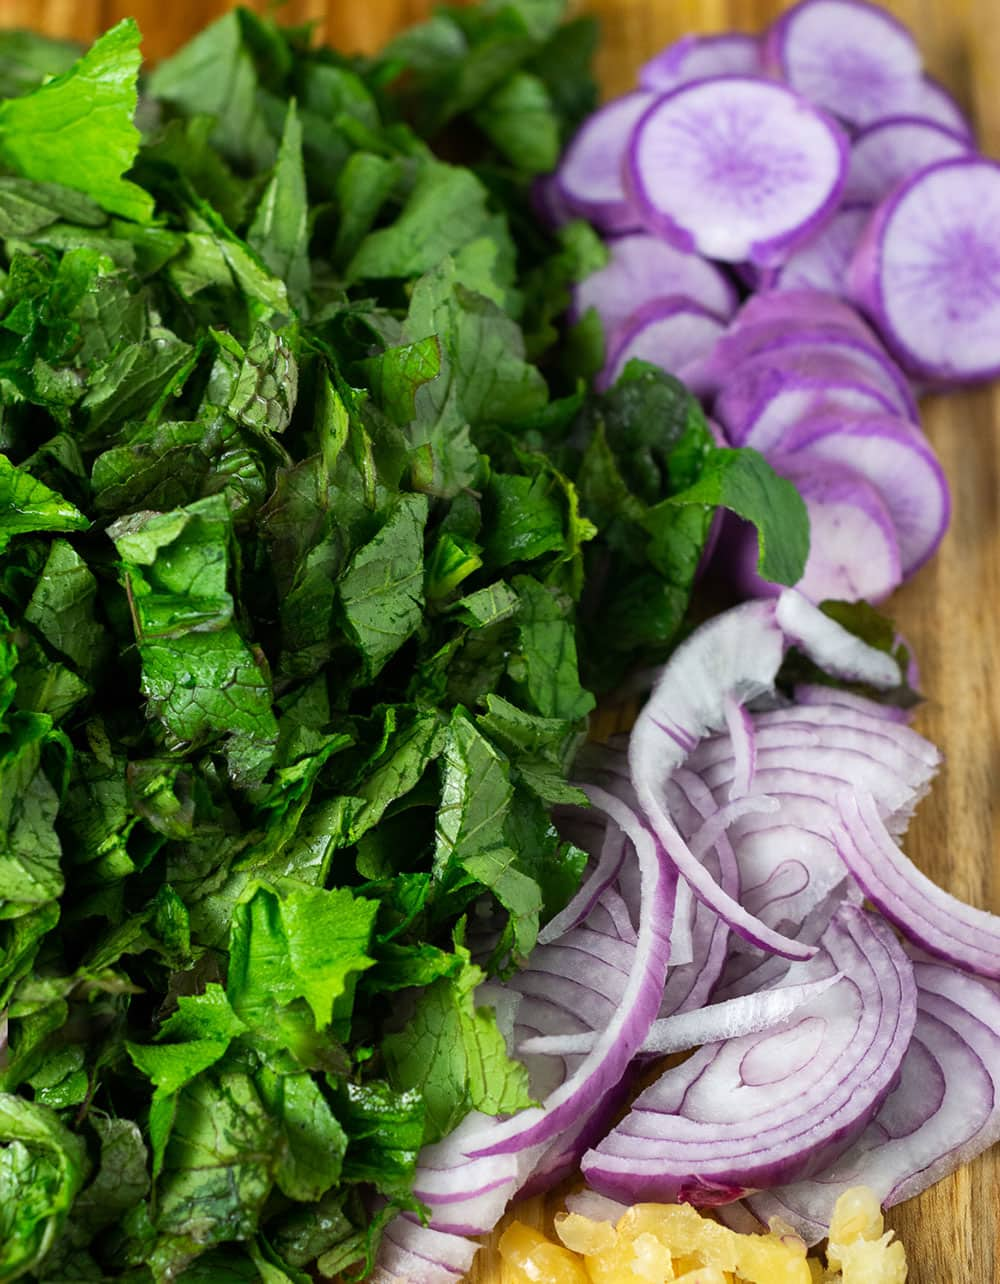 Chopped green radish leaves, purple radish slice